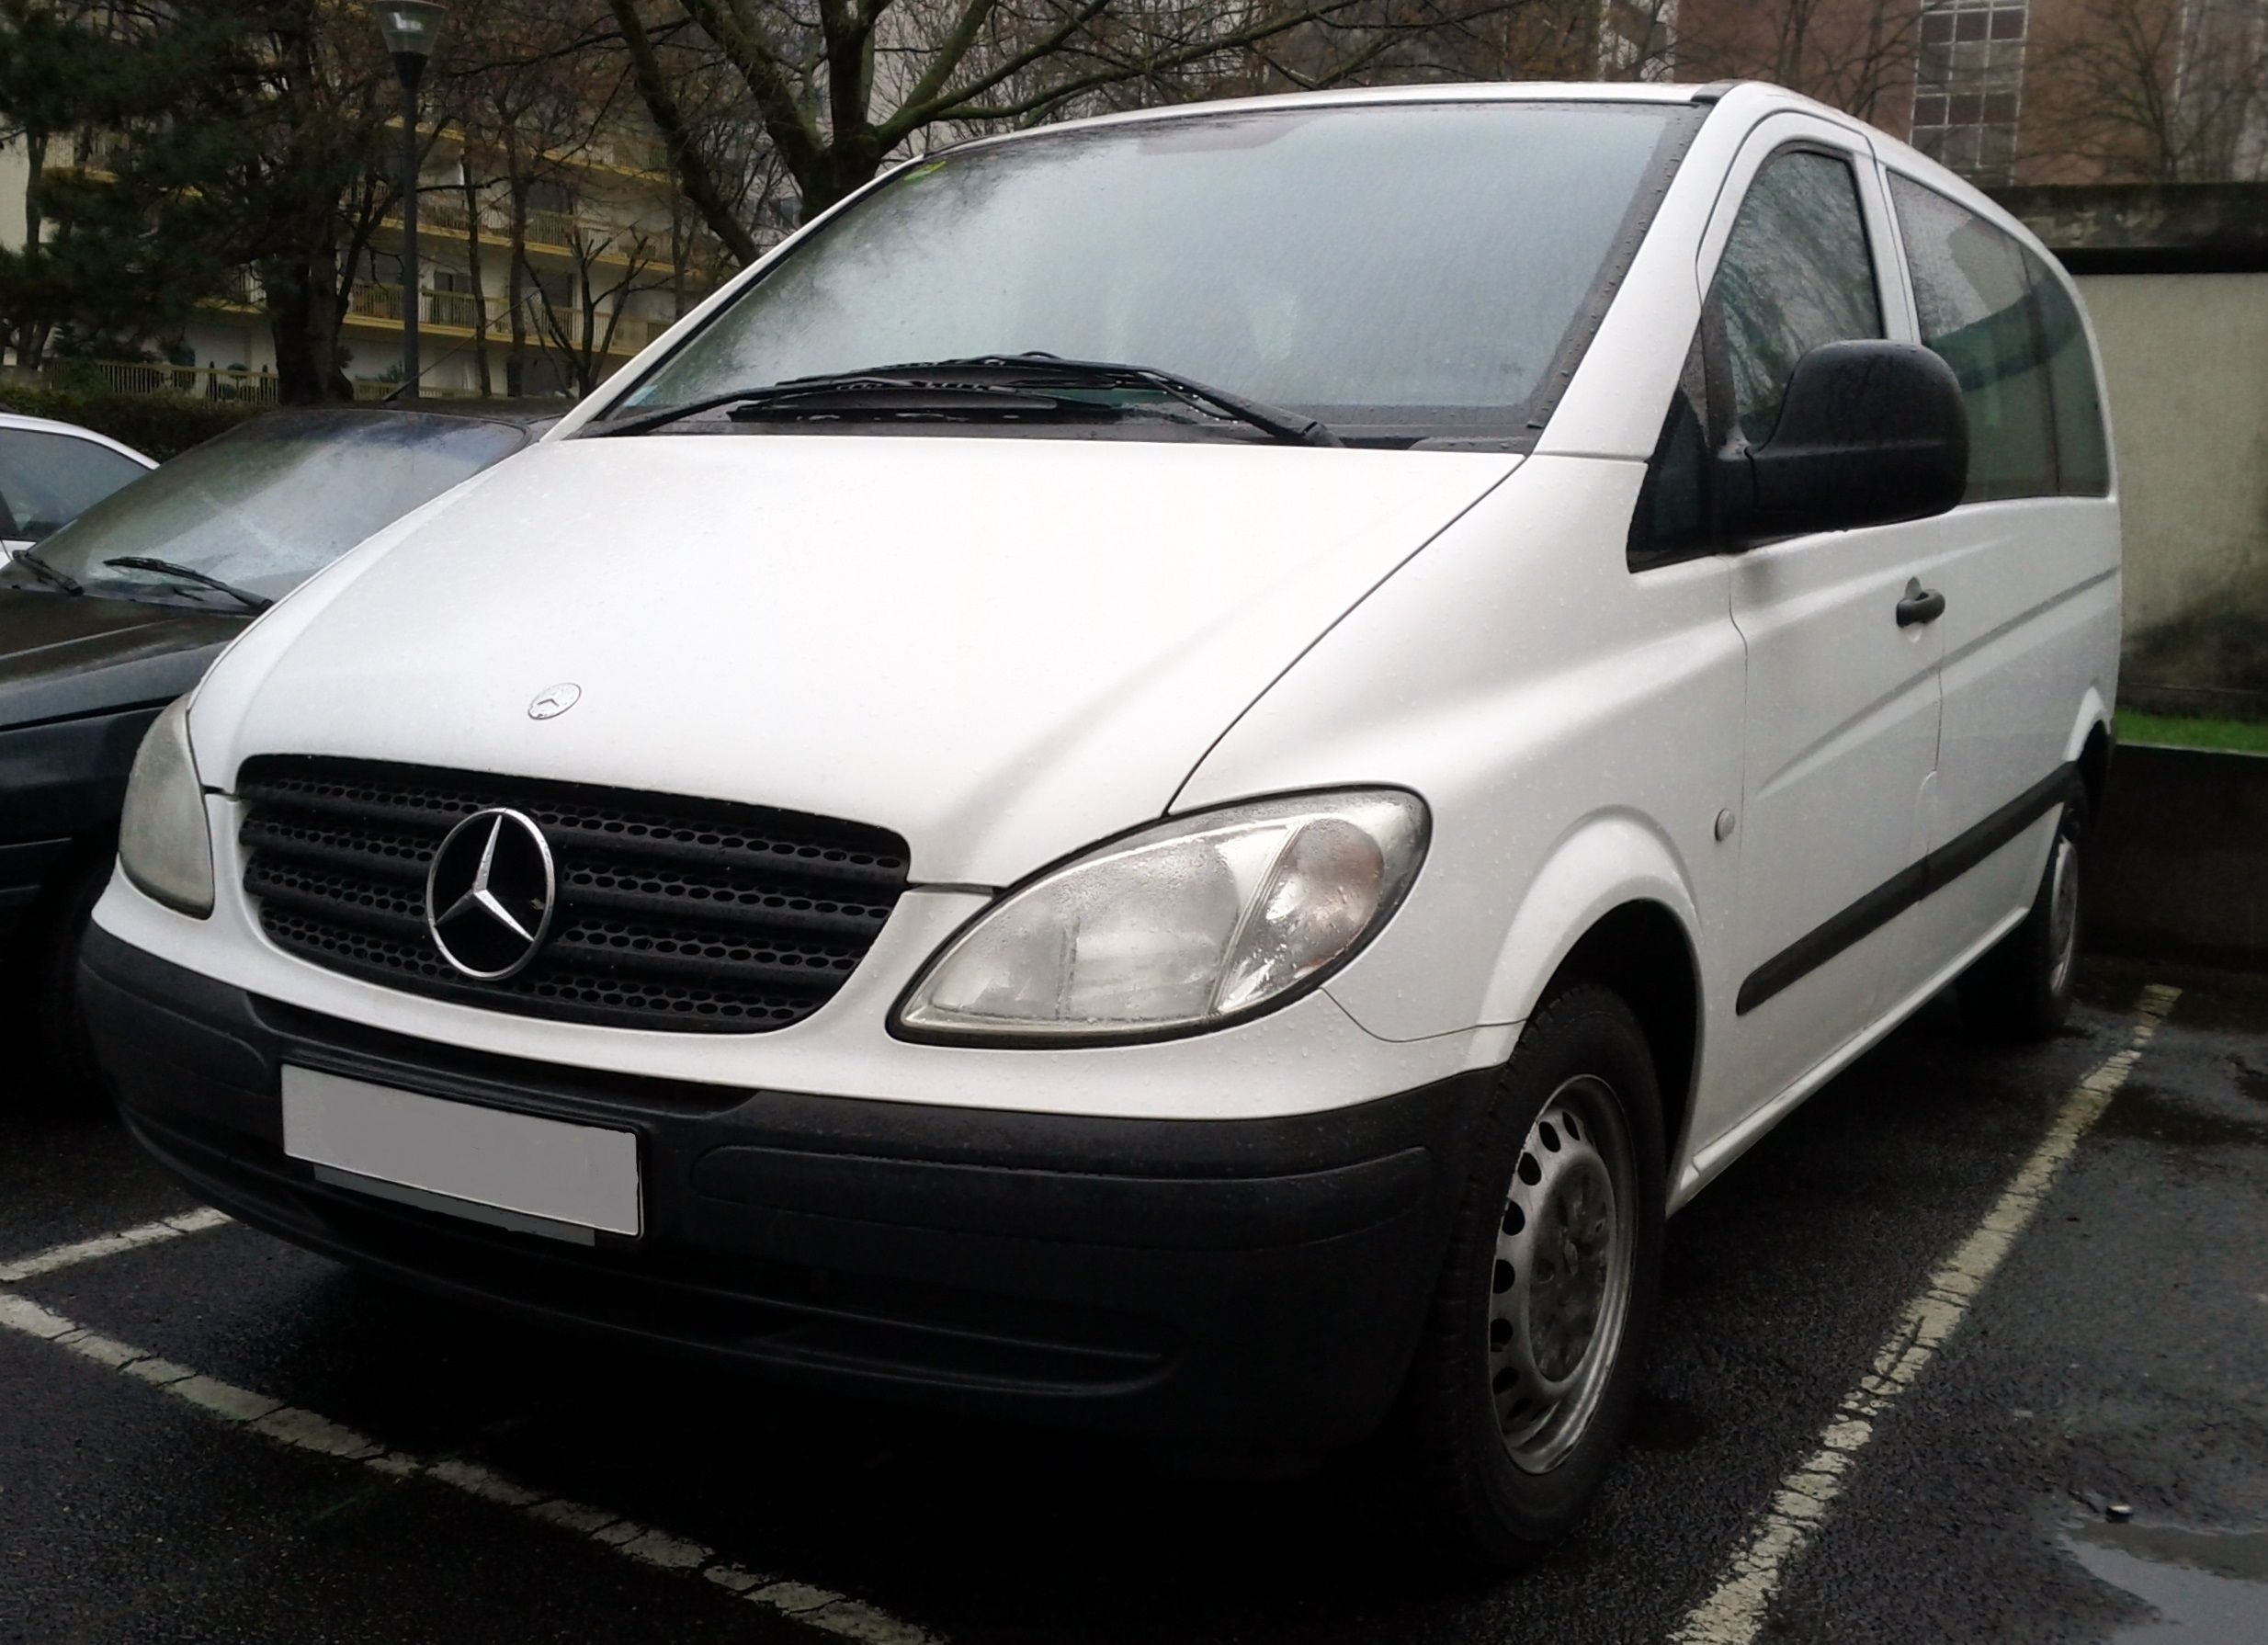 Mercedes Vito - 9 places Clim, 2005, Diesel, 9 places et plus